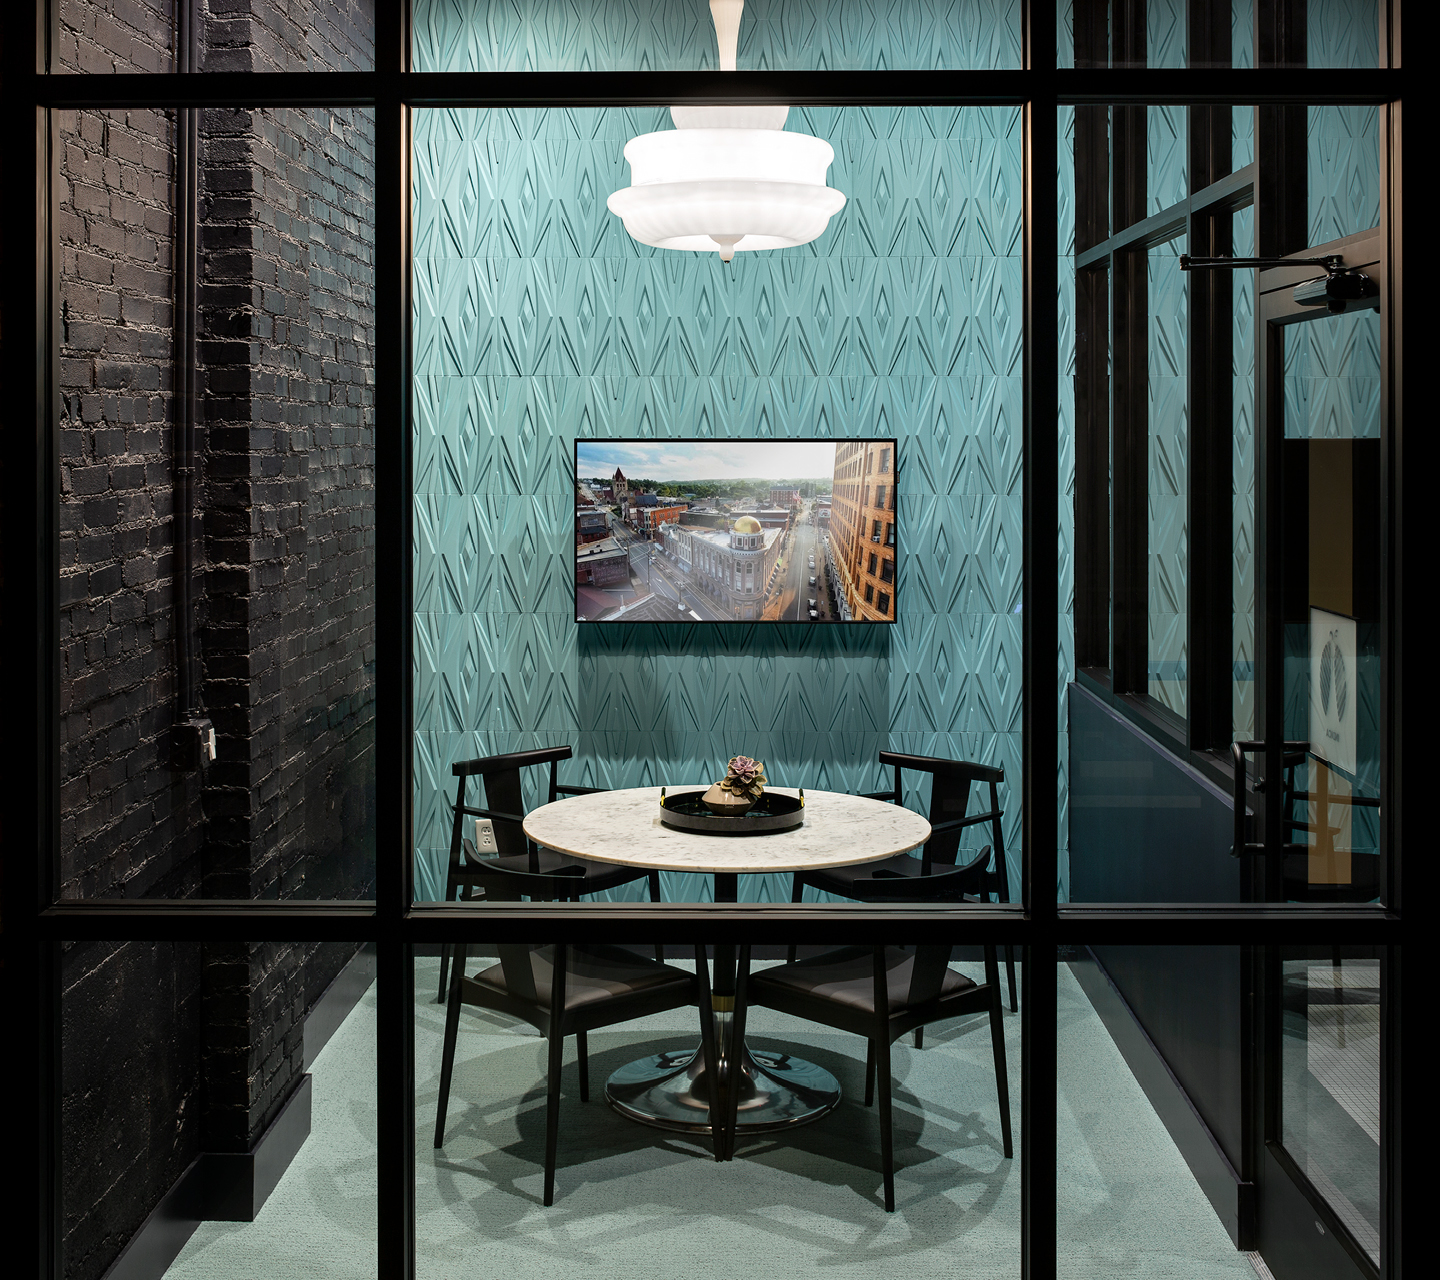 Let's talk privately: Design consultation for your consultation room